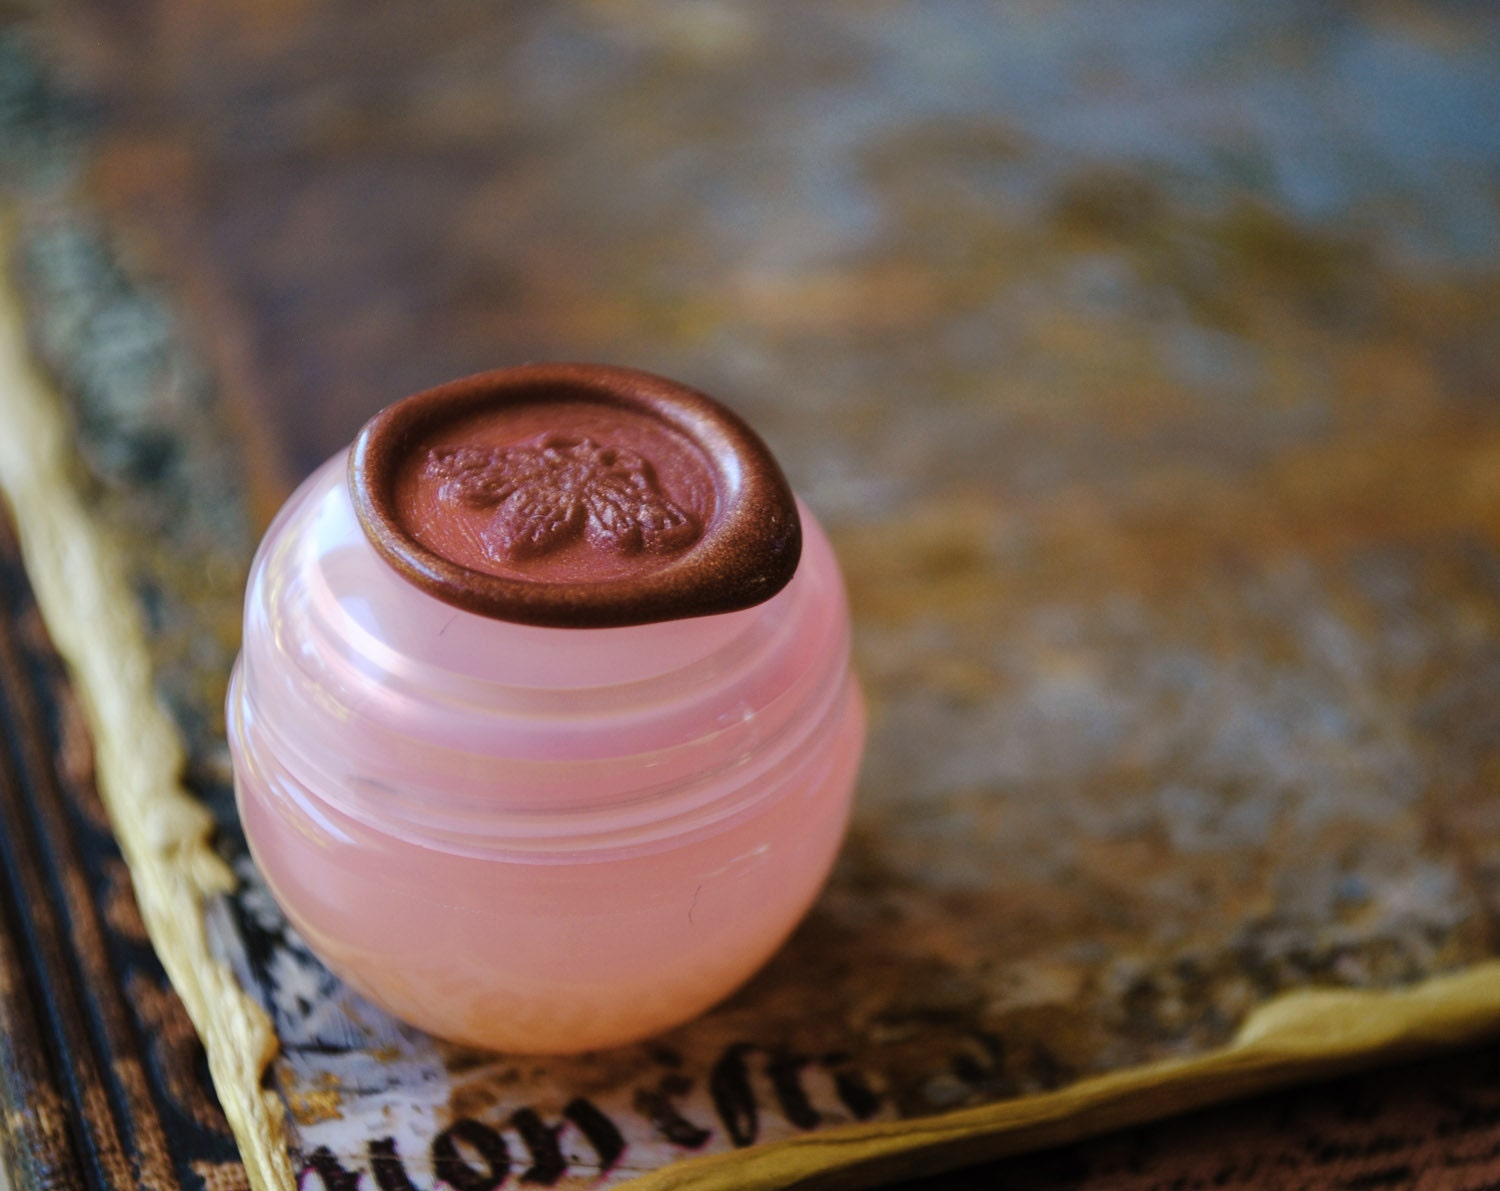 Spicy Floral Solid Natural Perfume Mini Sample of Aurora - An eco-luxe elixir with twinkling magic. - IlluminatedPerfume